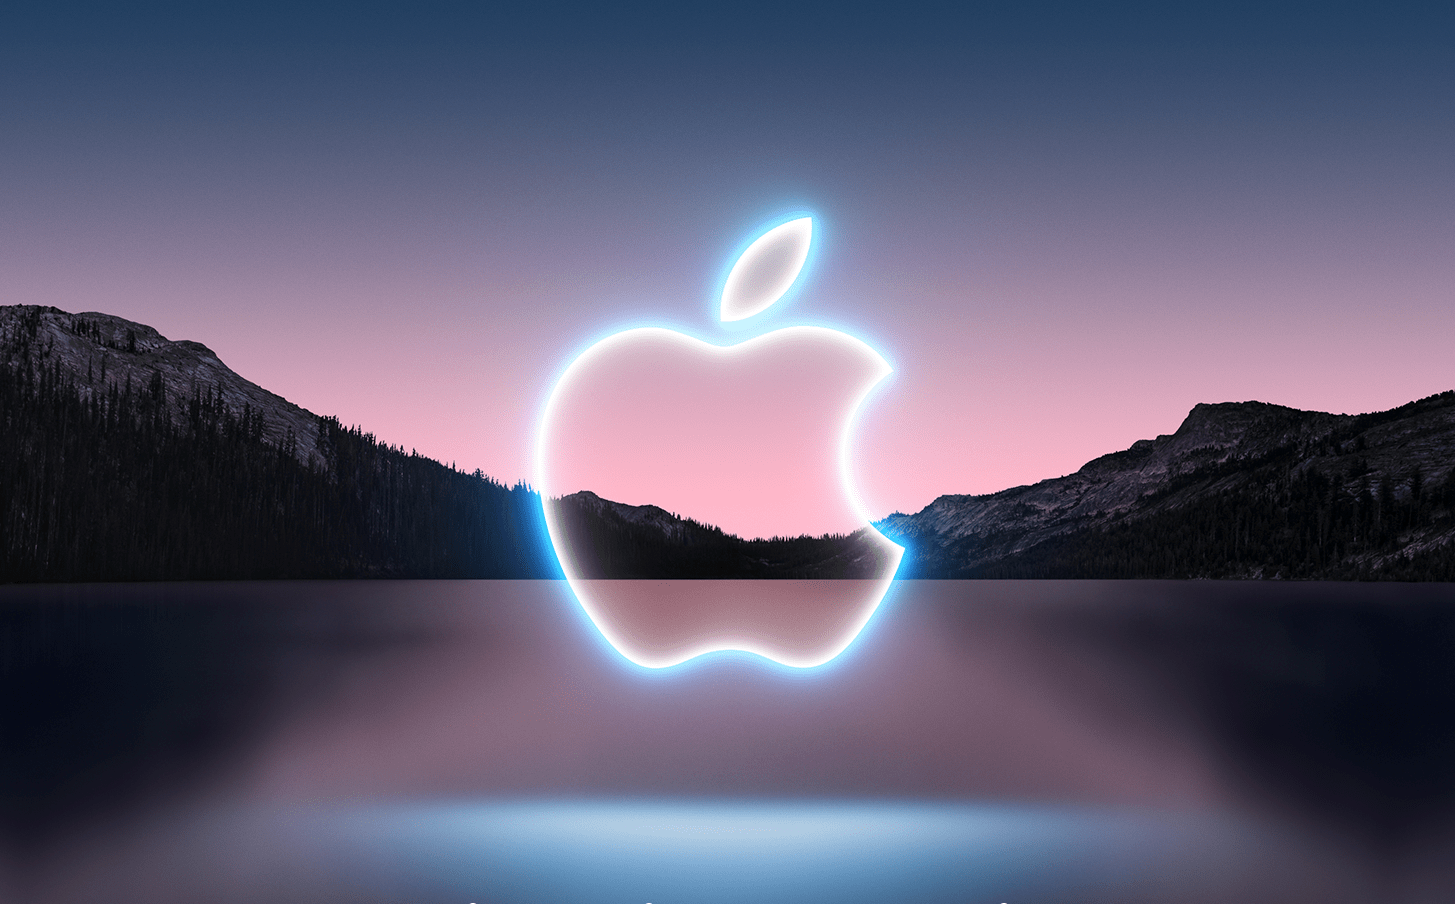 Apple Announces New iPhones, iPads, and Apple Watch Availability